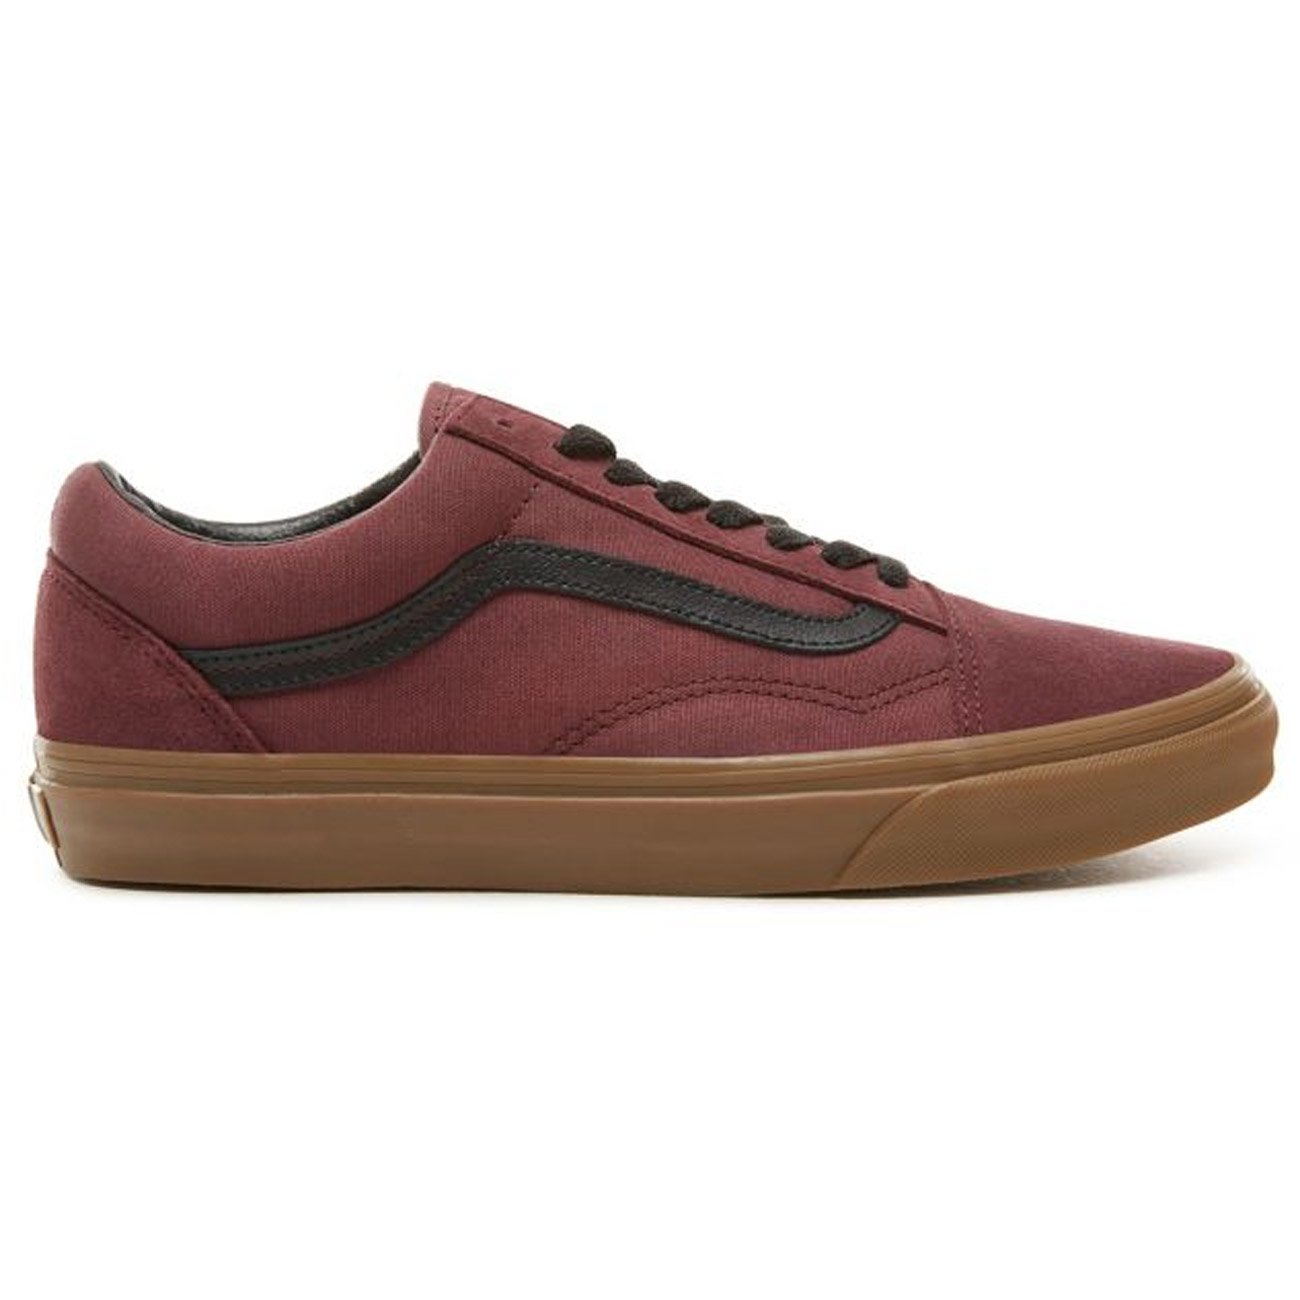 Vans U Old Skool - Zapatillas, Unisex Adulto 10 M US Women / 8.5 M US Men|Catawba Grape